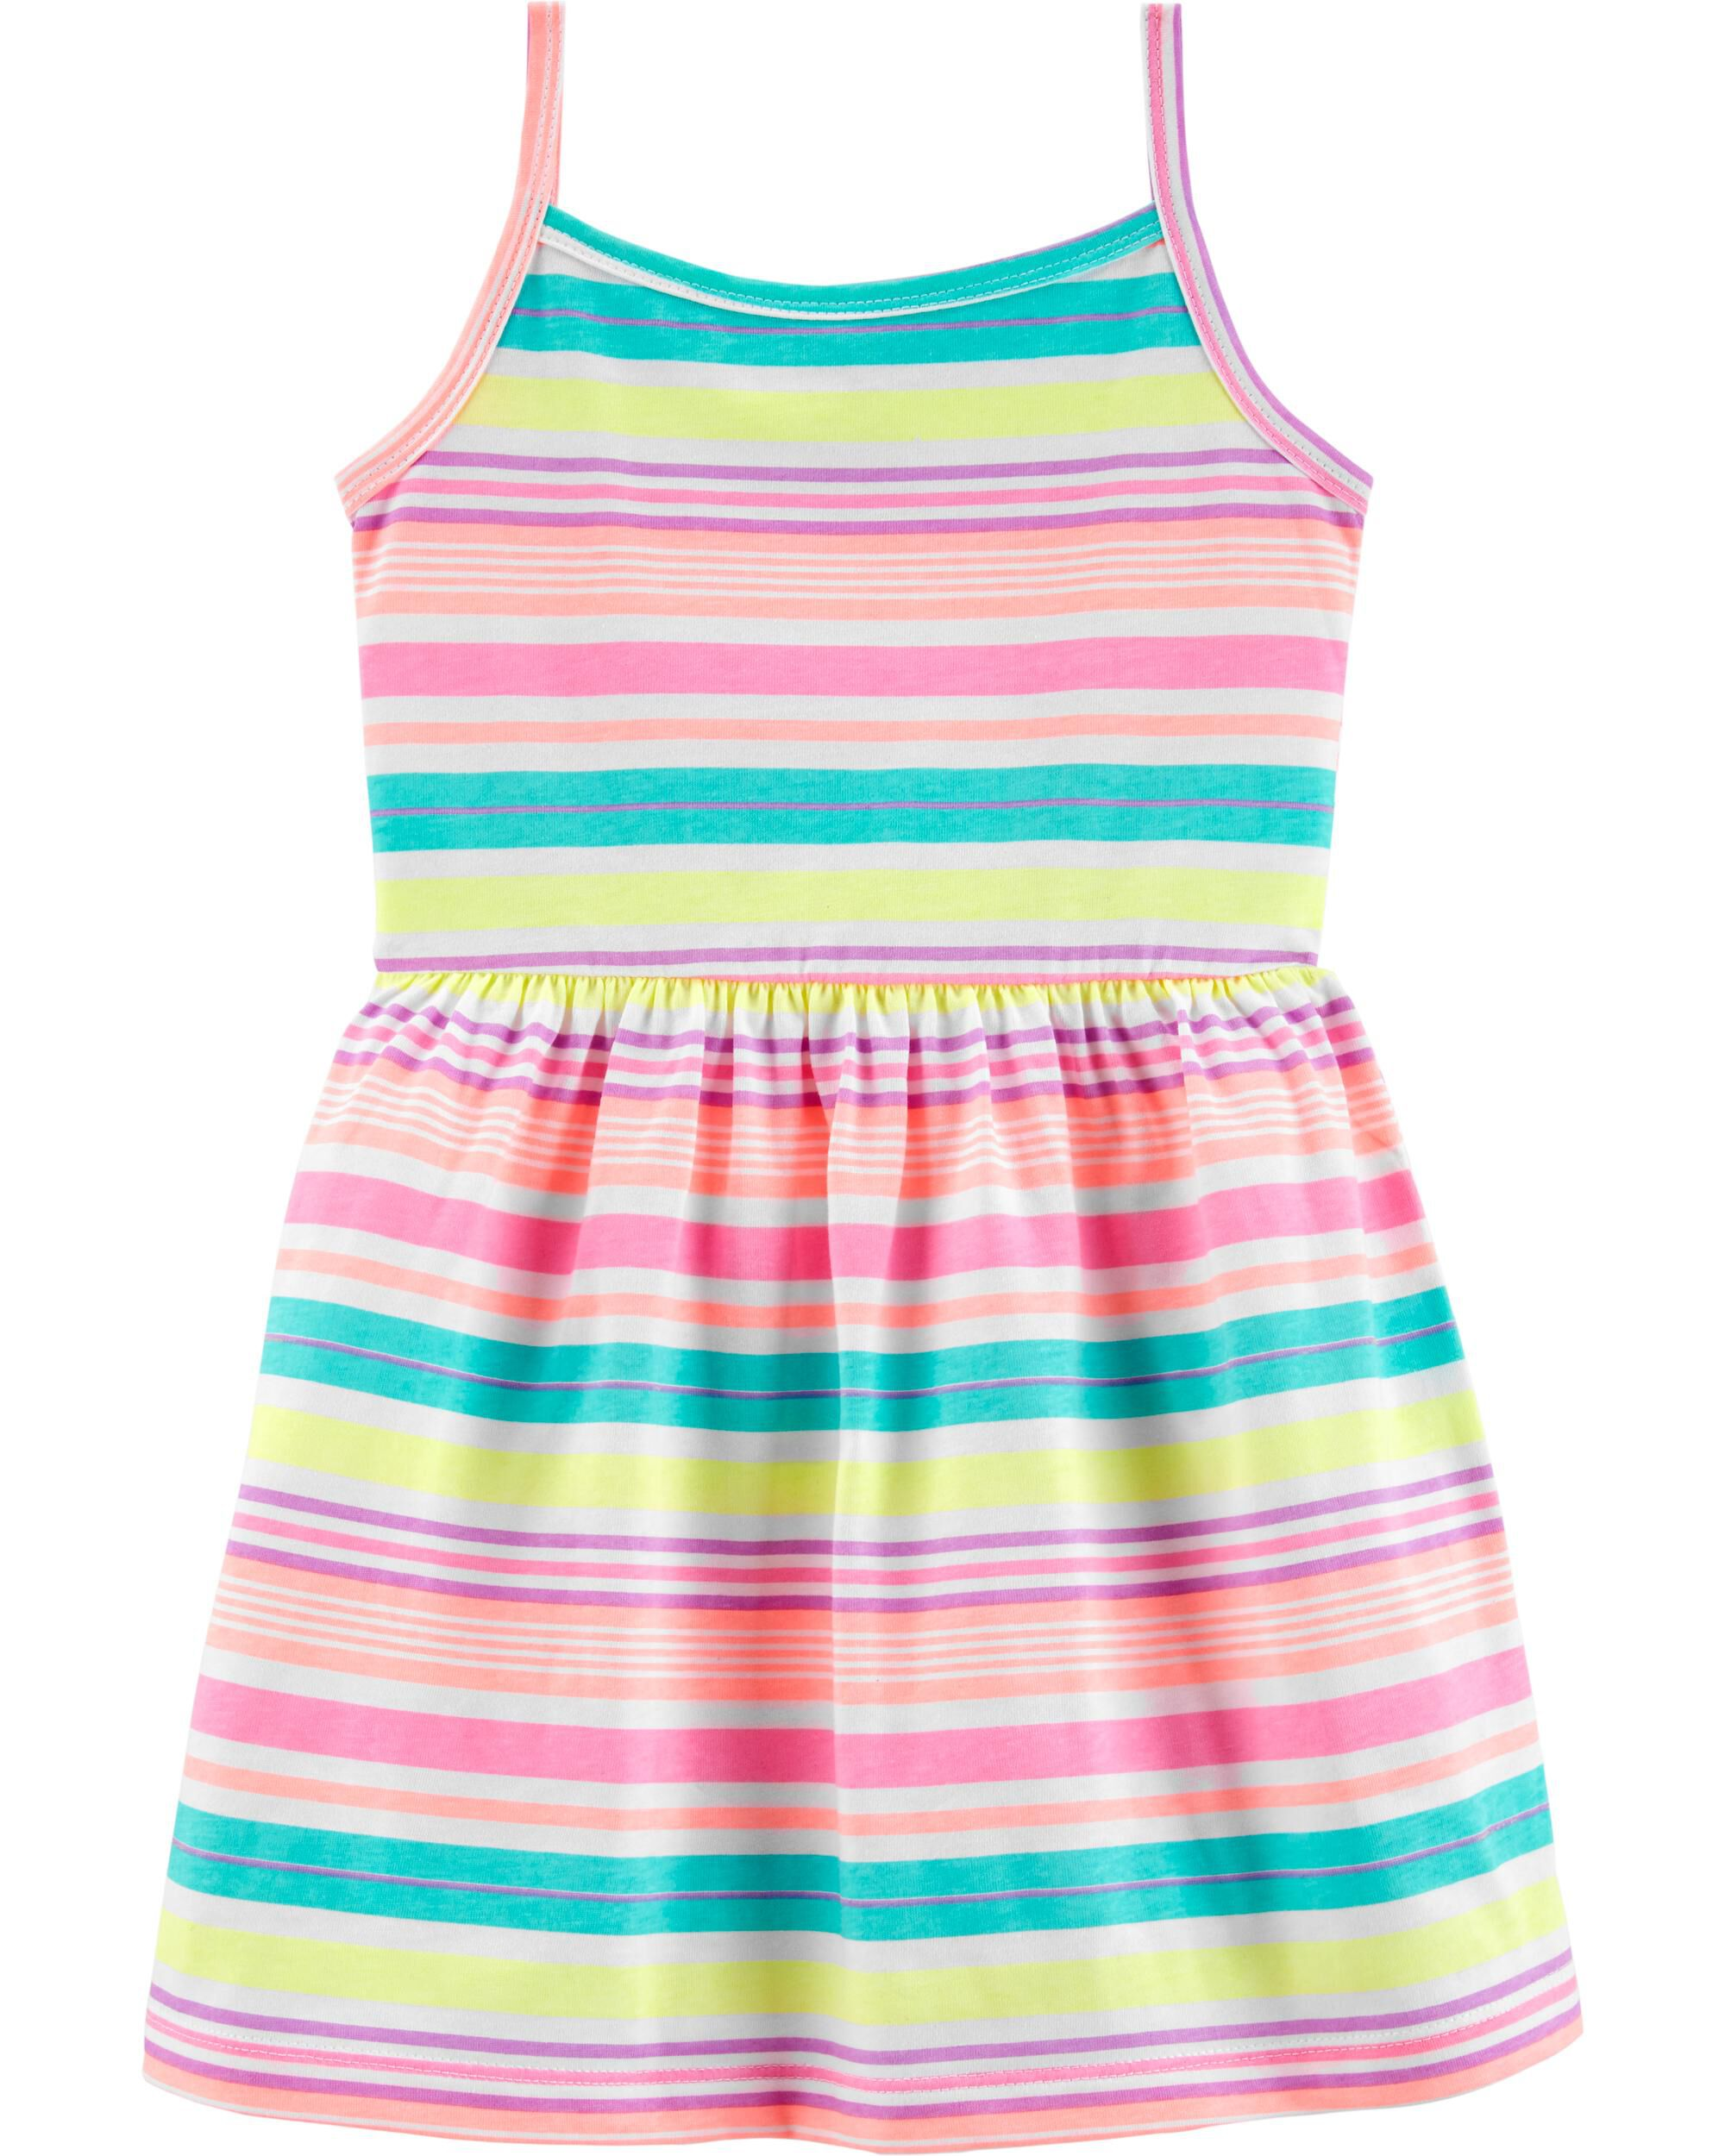 Baby & Toddler Clothing Carters Girls Red Stripe Embroidered Dress 18 Months Girls' Clothing (newborn-5t)